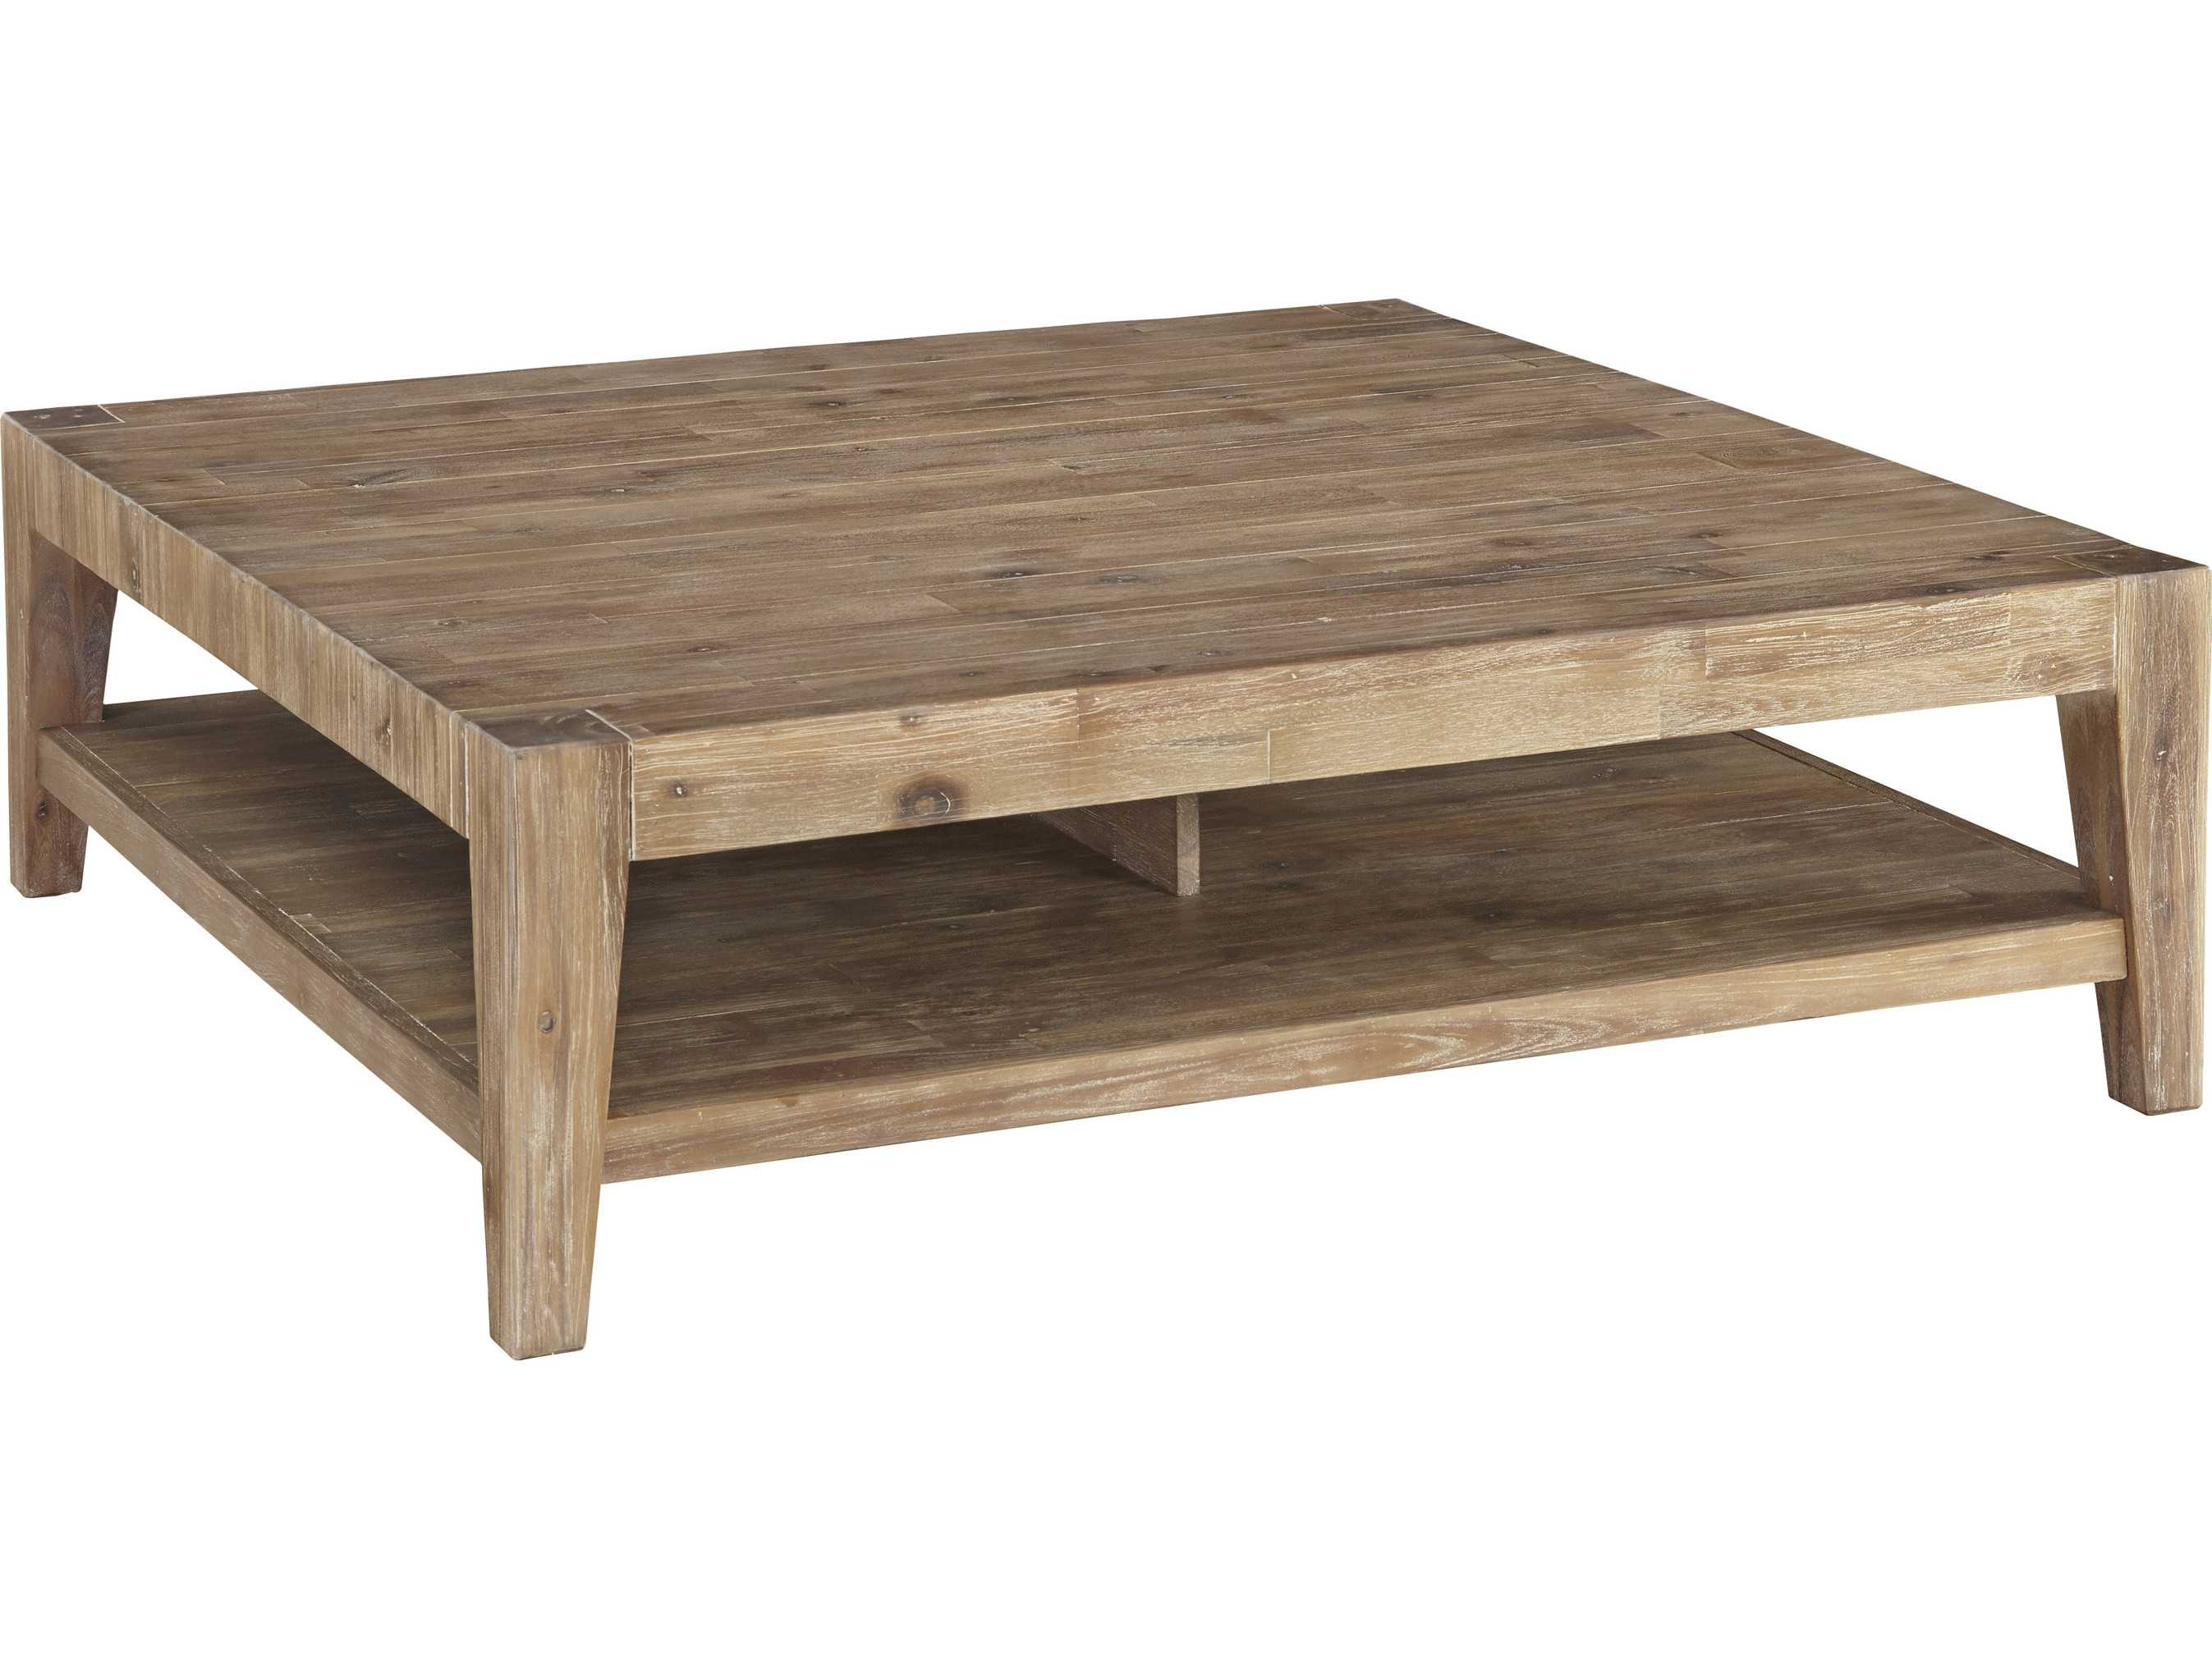 Casana Tyler Weathered Acacia 46 39 39 Square Coffee Table 834 060